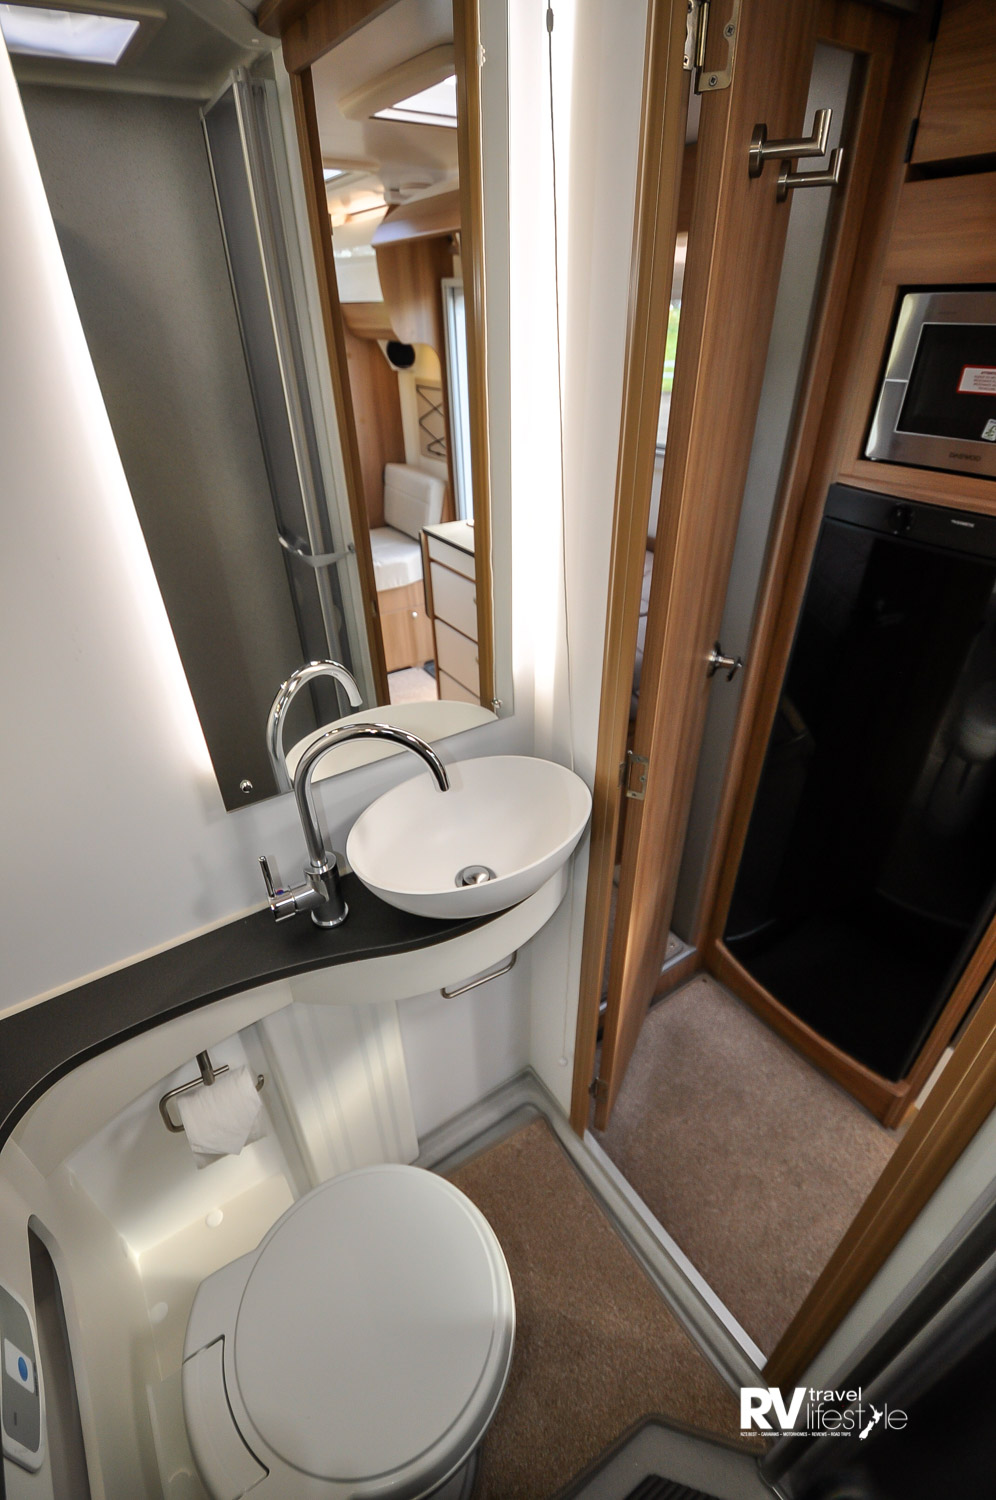 A curvy finish to the bathroom to accommodate the round sink, towel hook underneath, toilet roll holder fitted, storage behind the toilet which is a 12V electric flush pedestal toilet